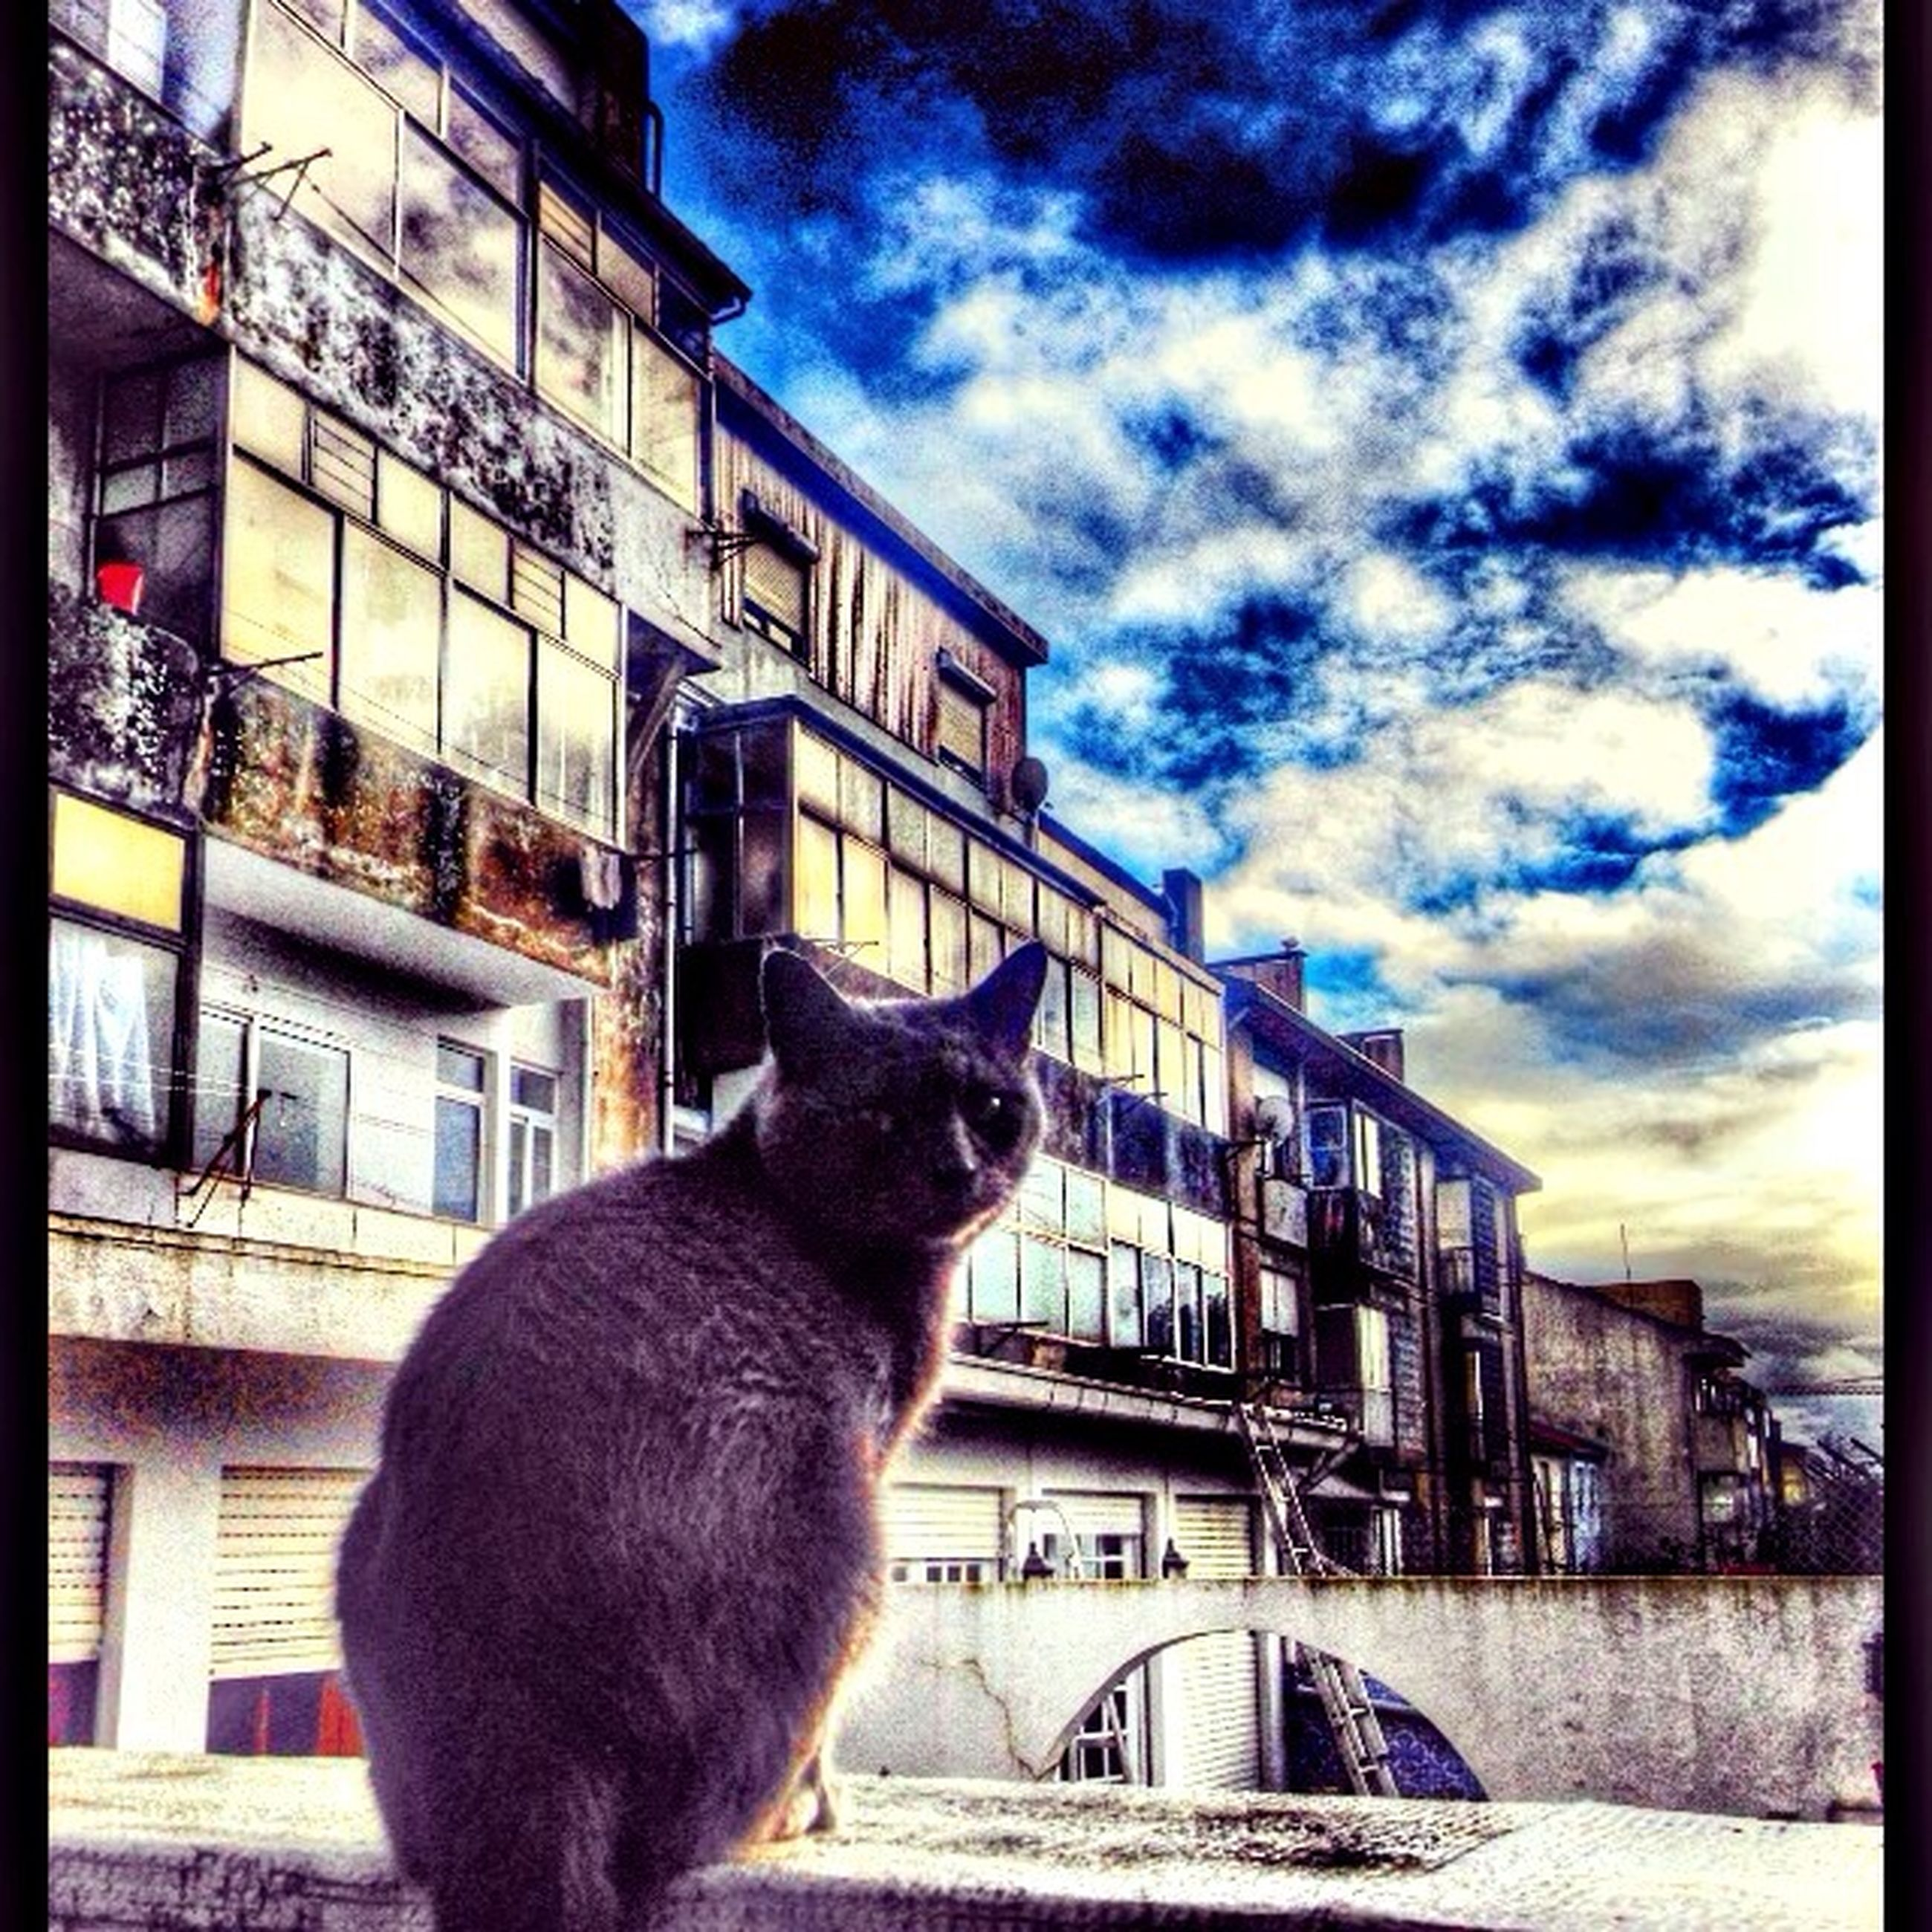 building exterior, architecture, built structure, domestic animals, one animal, animal themes, sky, mammal, pets, window, cloud - sky, cloud, house, residential building, residential structure, railing, city, dog, building, outdoors